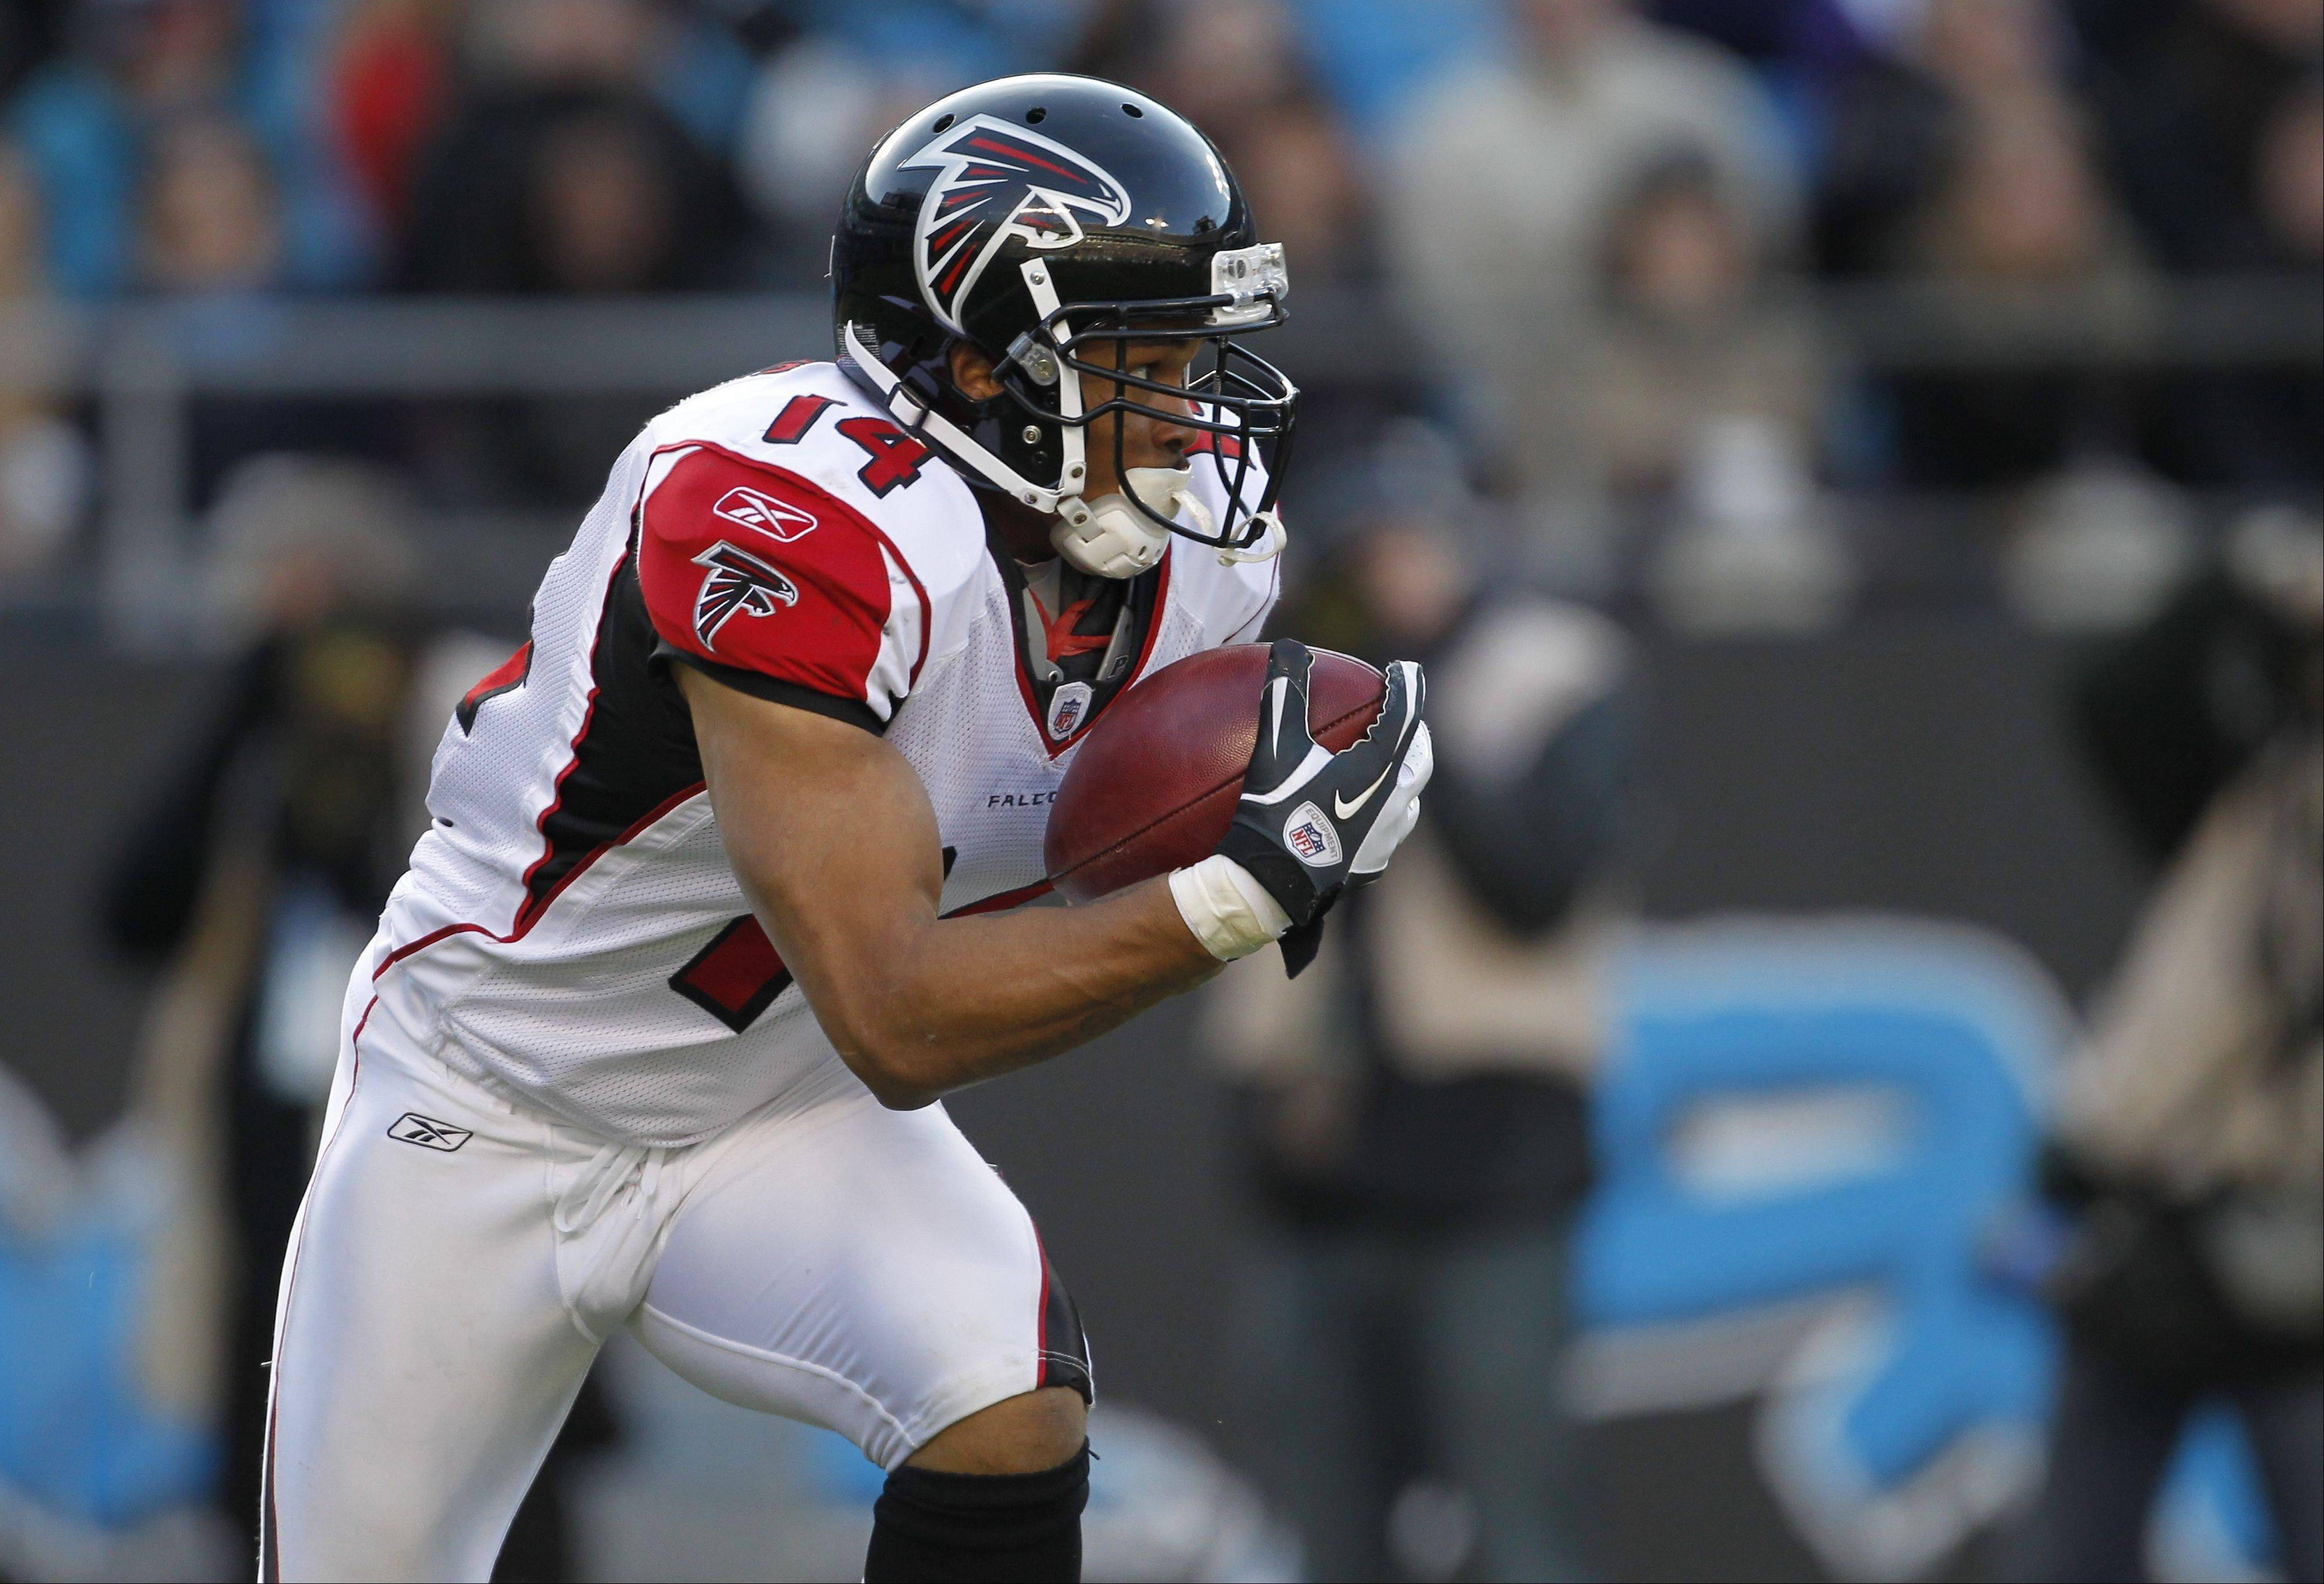 A Pro Bowler on special teams with the Atlanta Falcons, Eric Weems (14) has signed a three-year contract with the Chicago Bears. A good tackler, Weems also excelled as a kick returner.